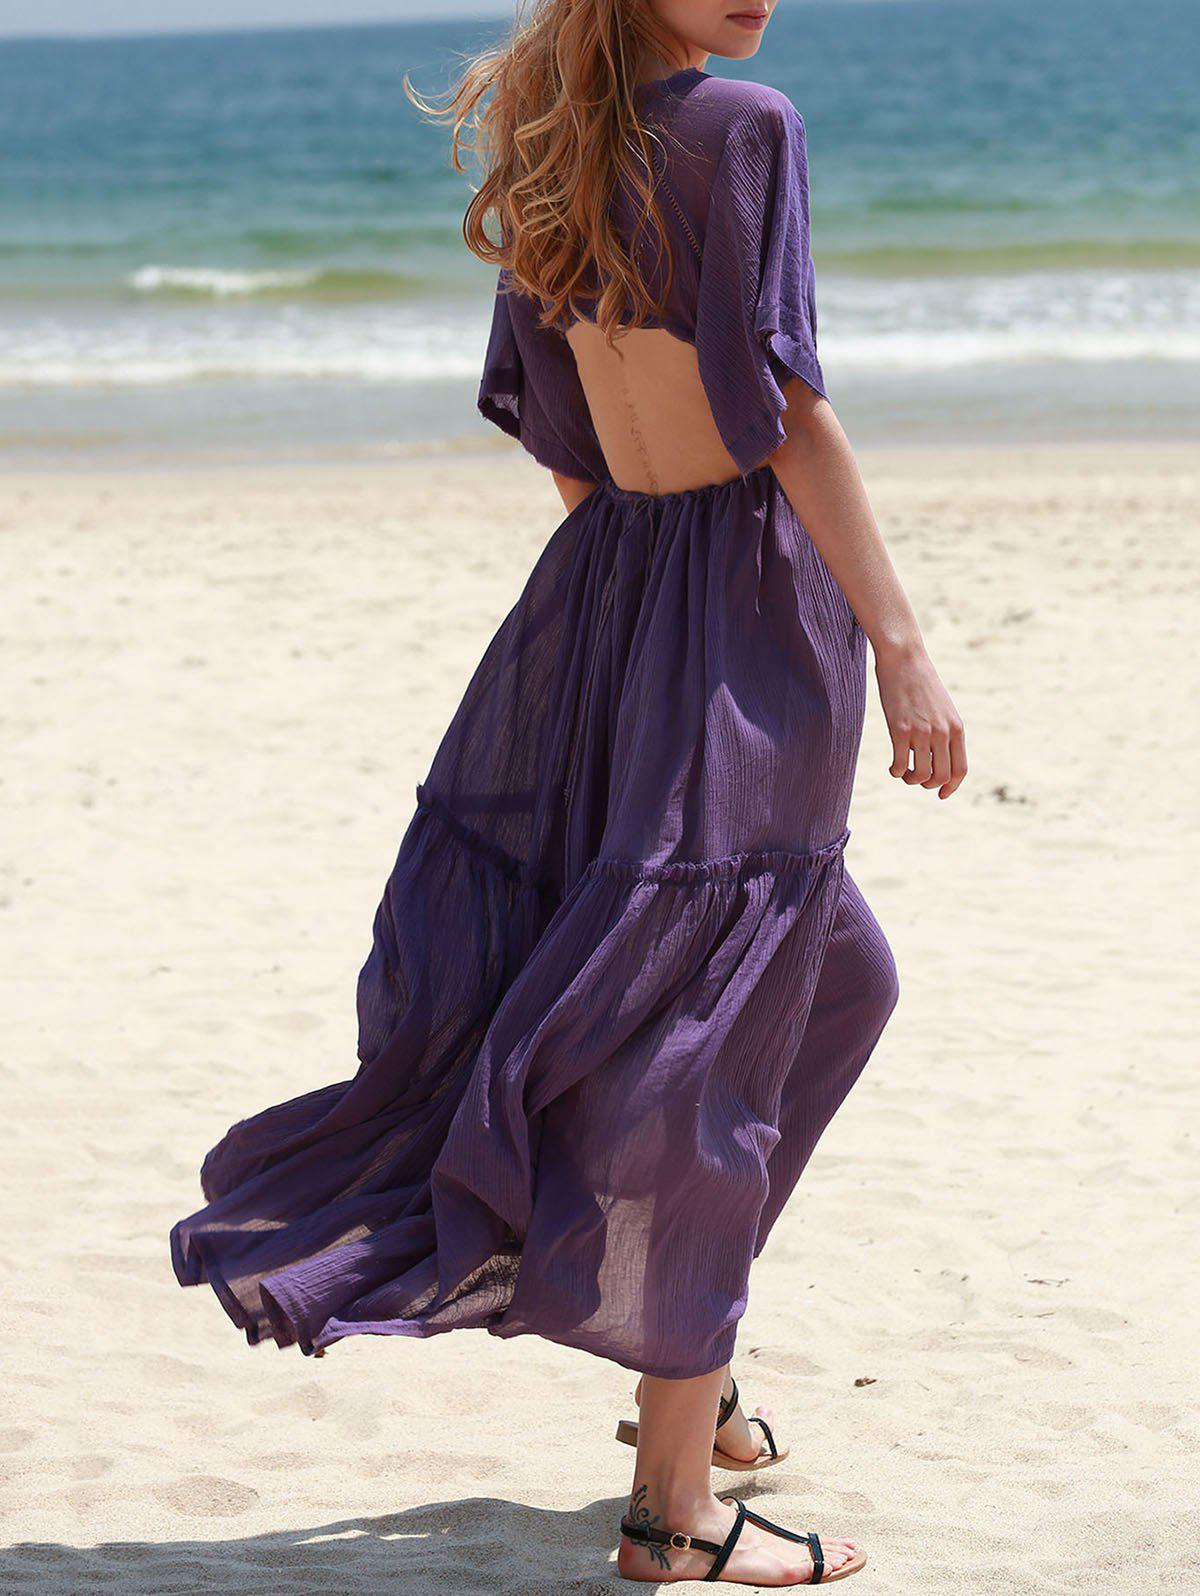 Bohemian Plunging Neck Solid Color Hollow Out Women's Dress - PURPLE S